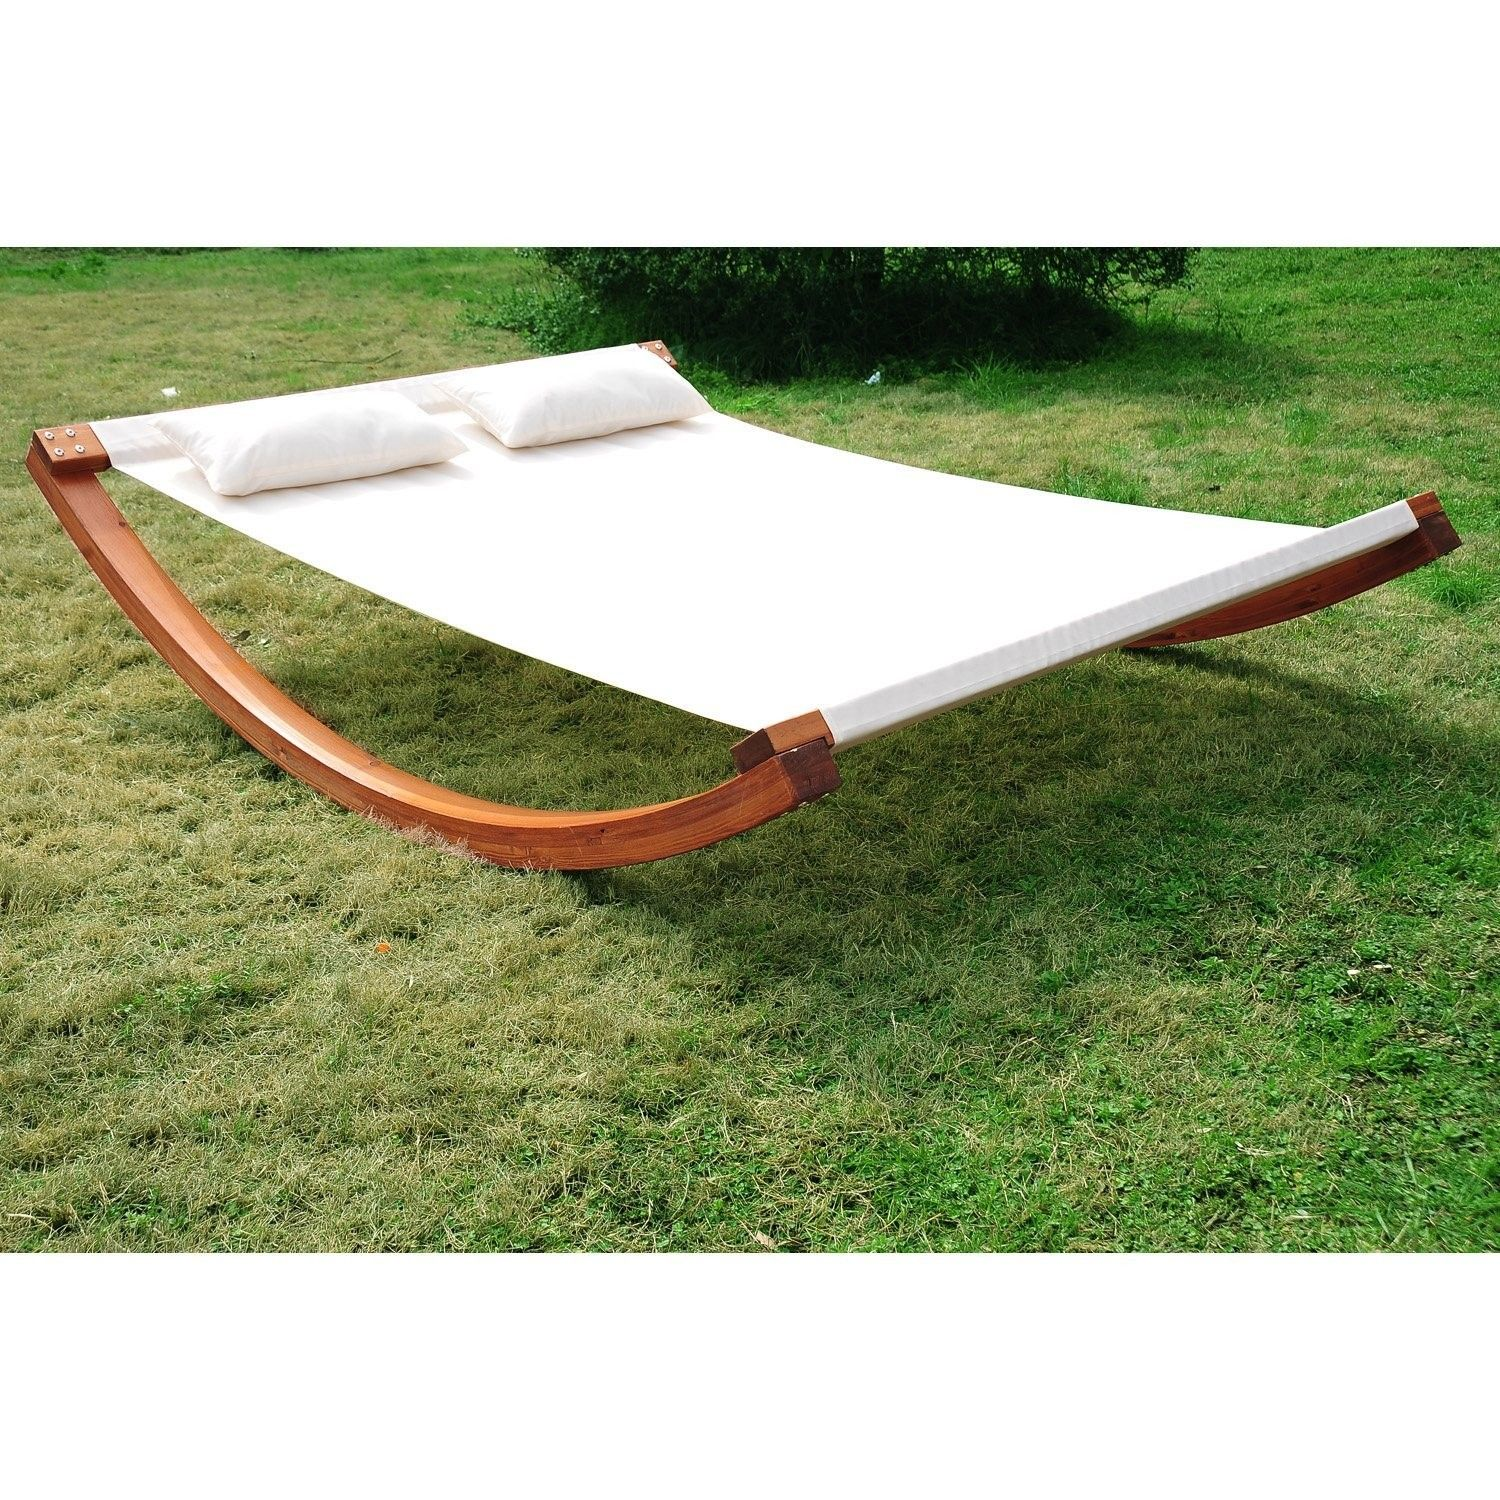 seat canopy bench swing hg furniture itm person yard outdoor bu hammock patio loveseat w